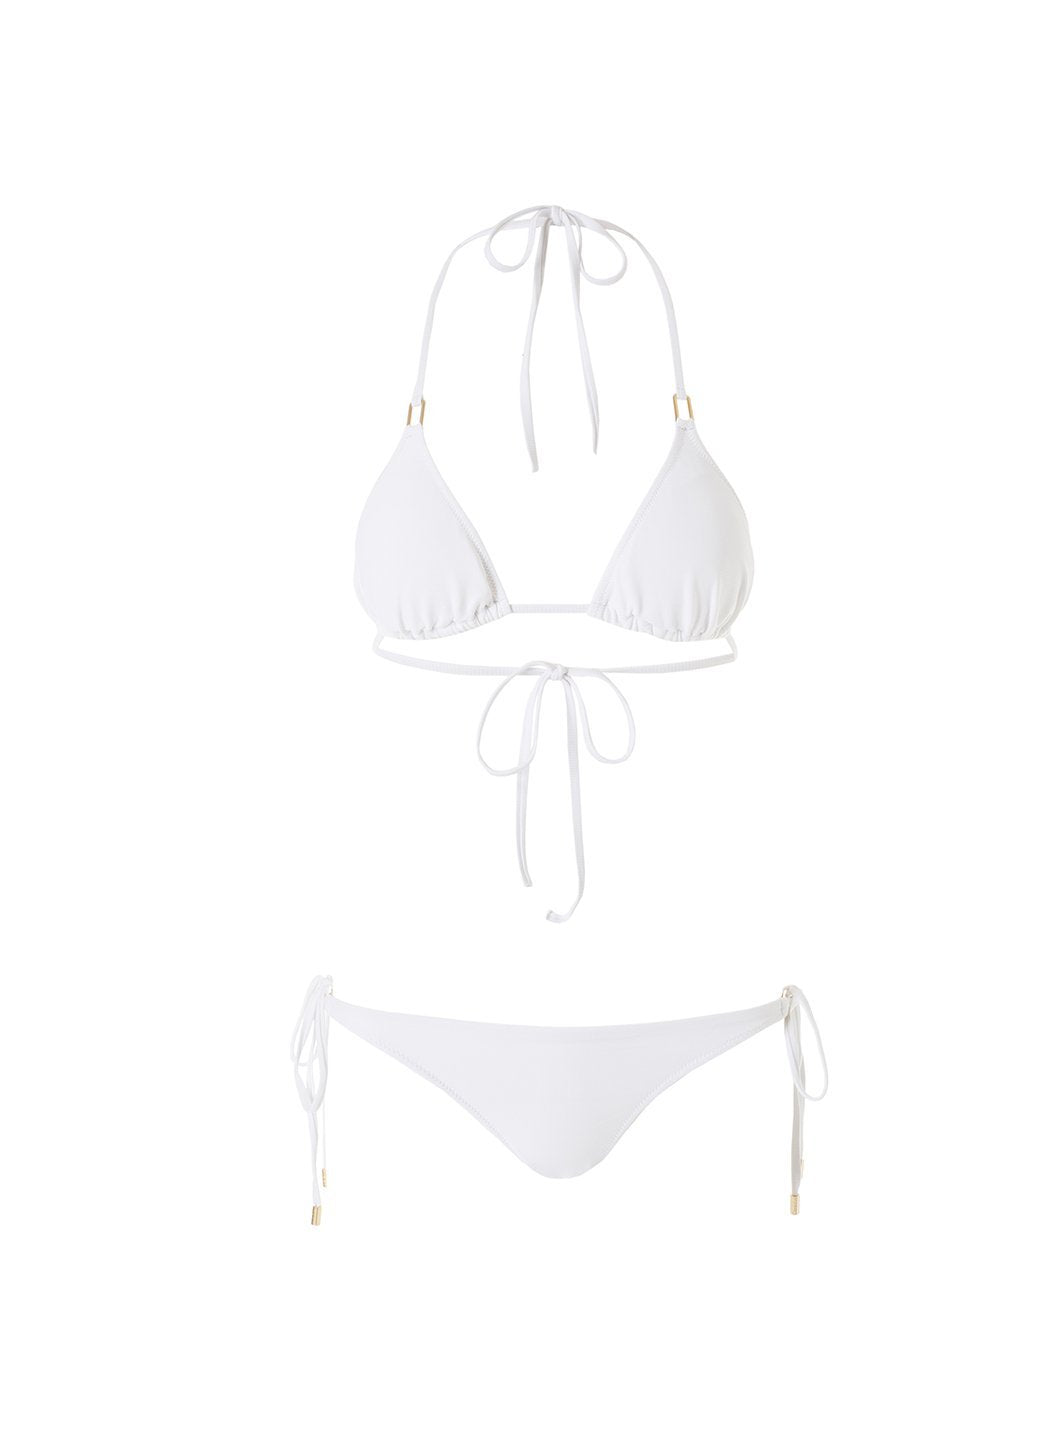 exclusive cancun white ribbed classic triangle bikini 2019